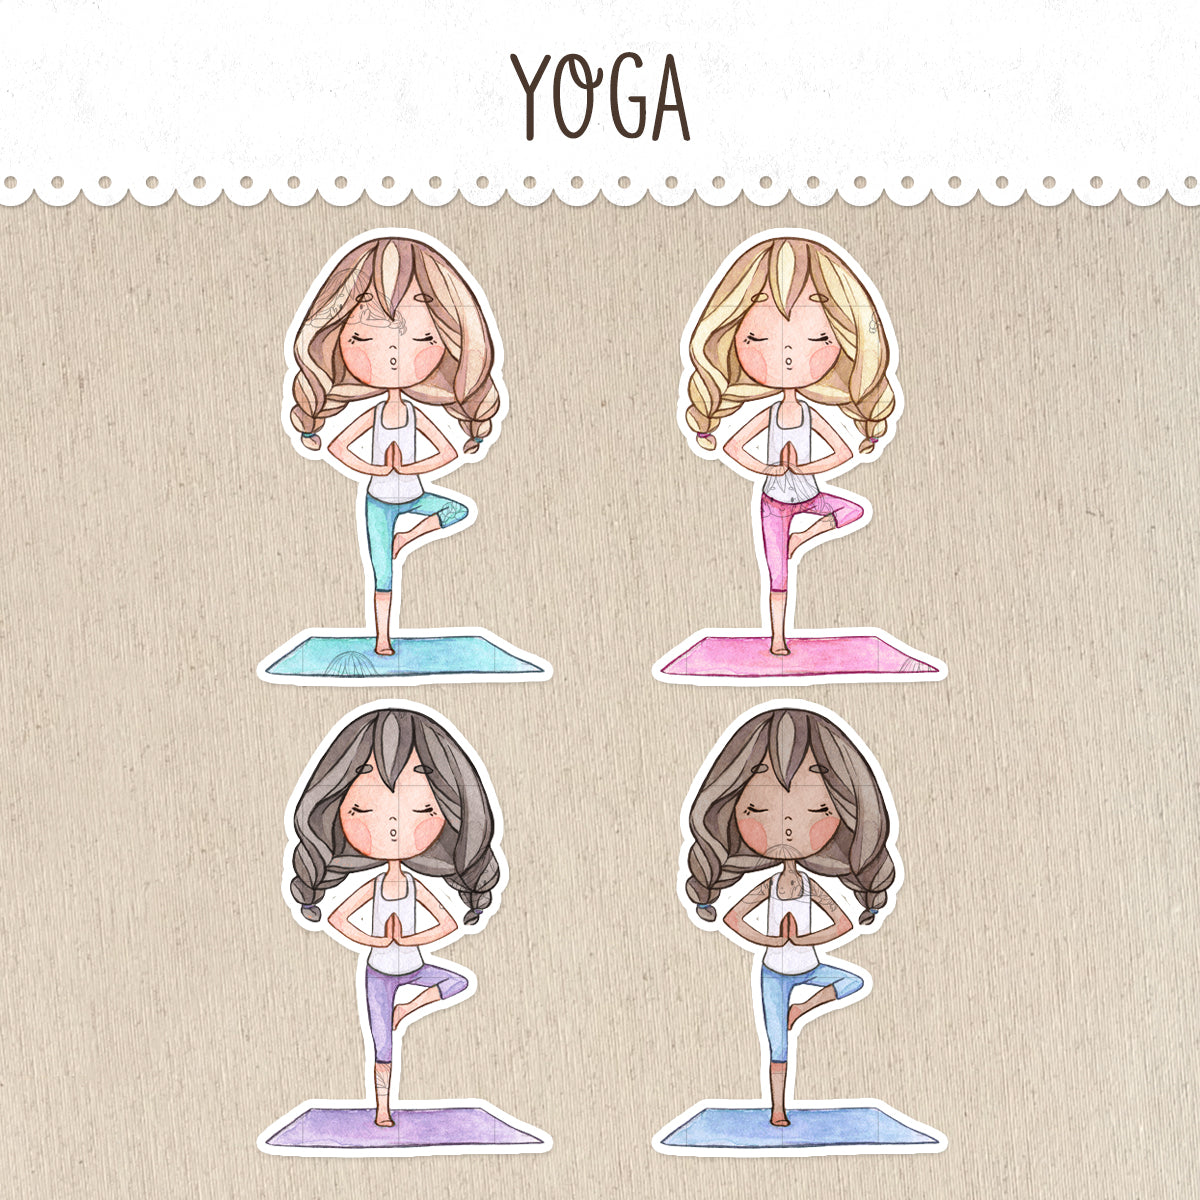 Yoga Class Decorative Stickers ~Kawaii girl: Vera, Valerie and Violet~